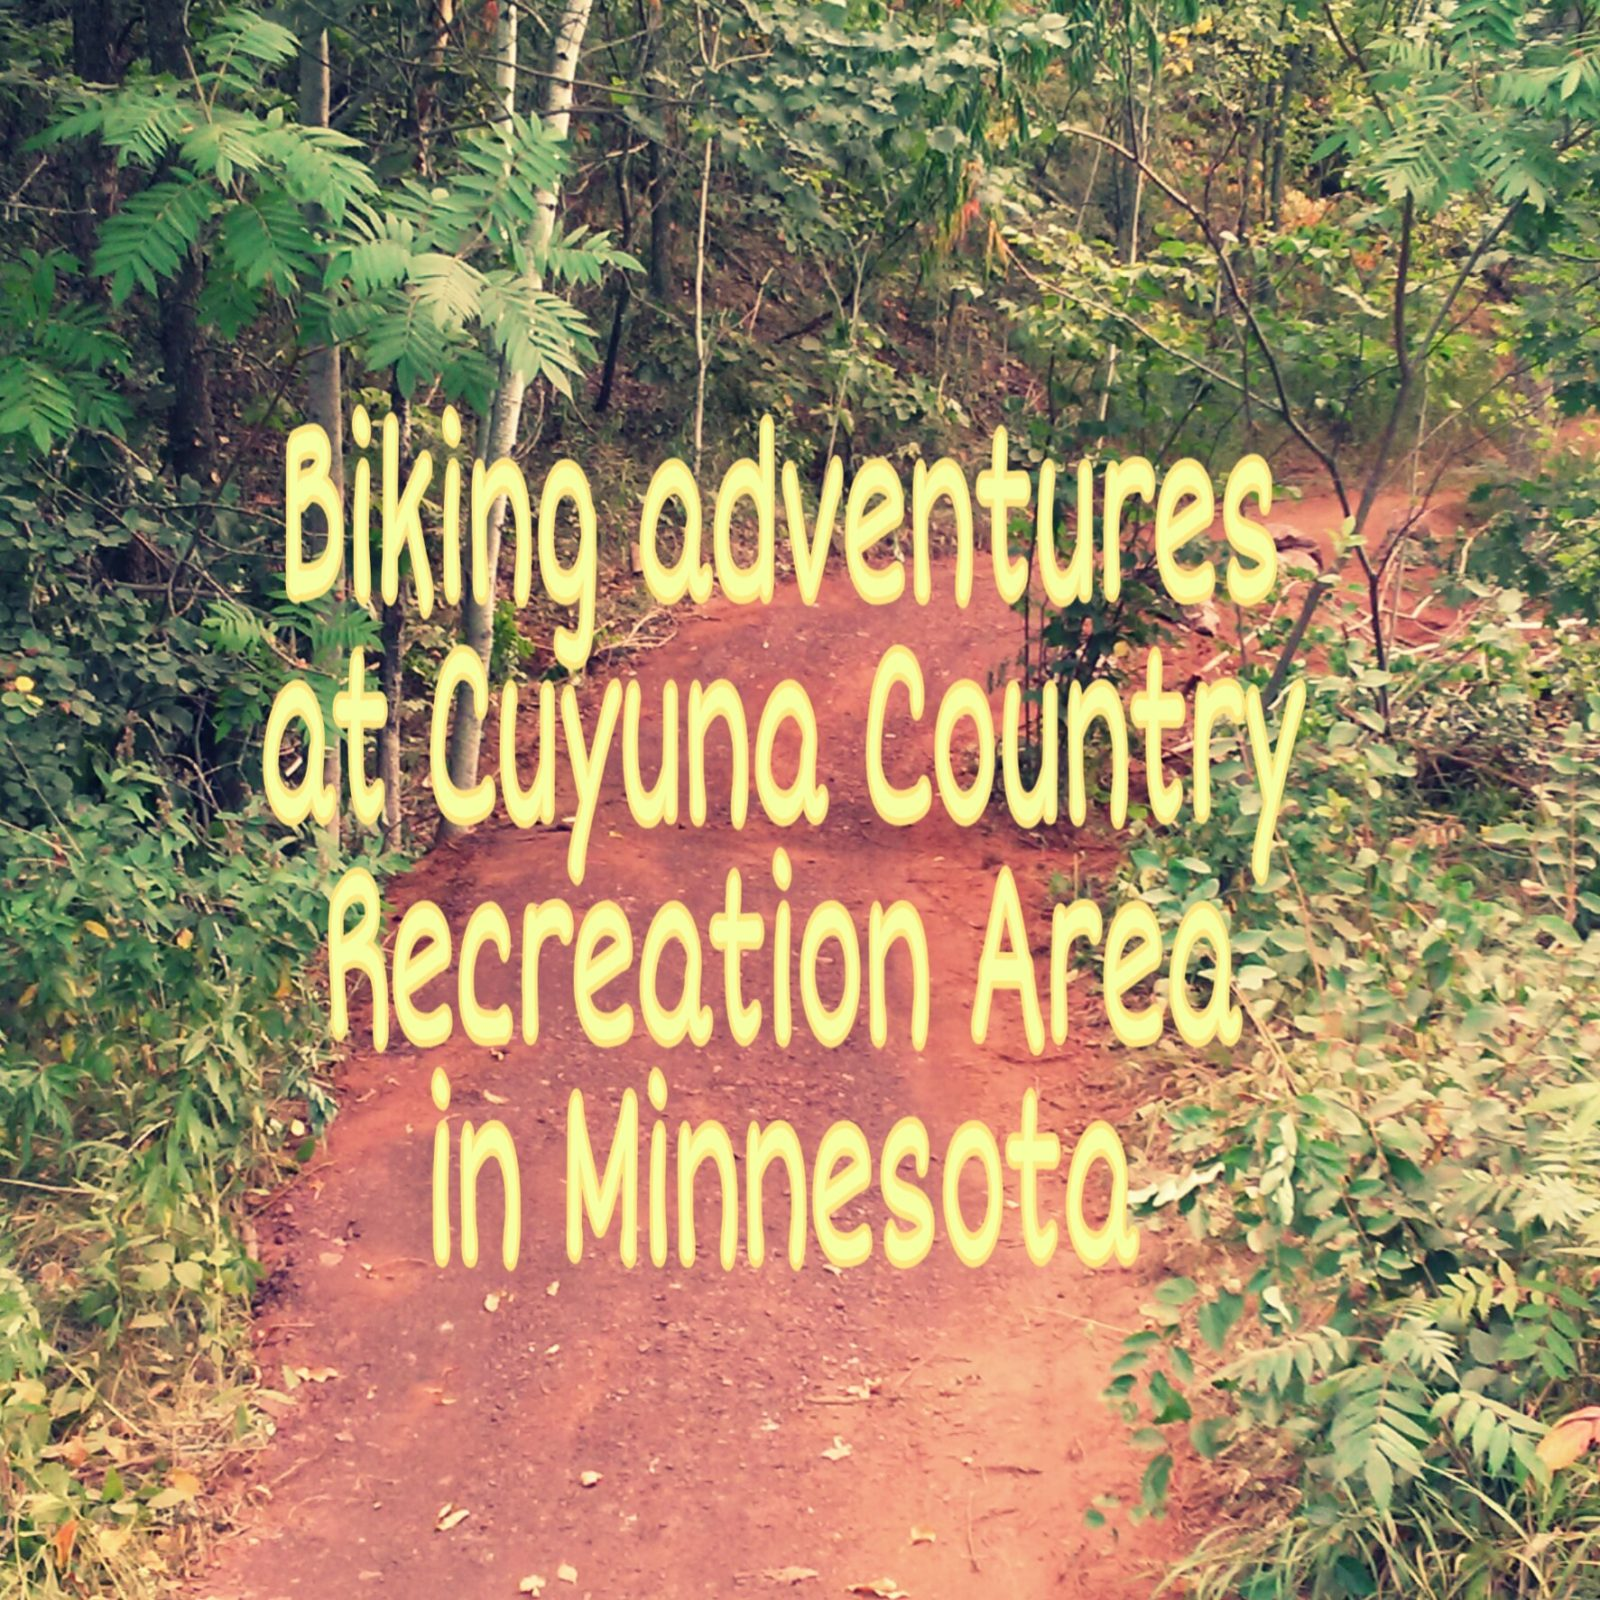 Biking Adventures in Minnesota